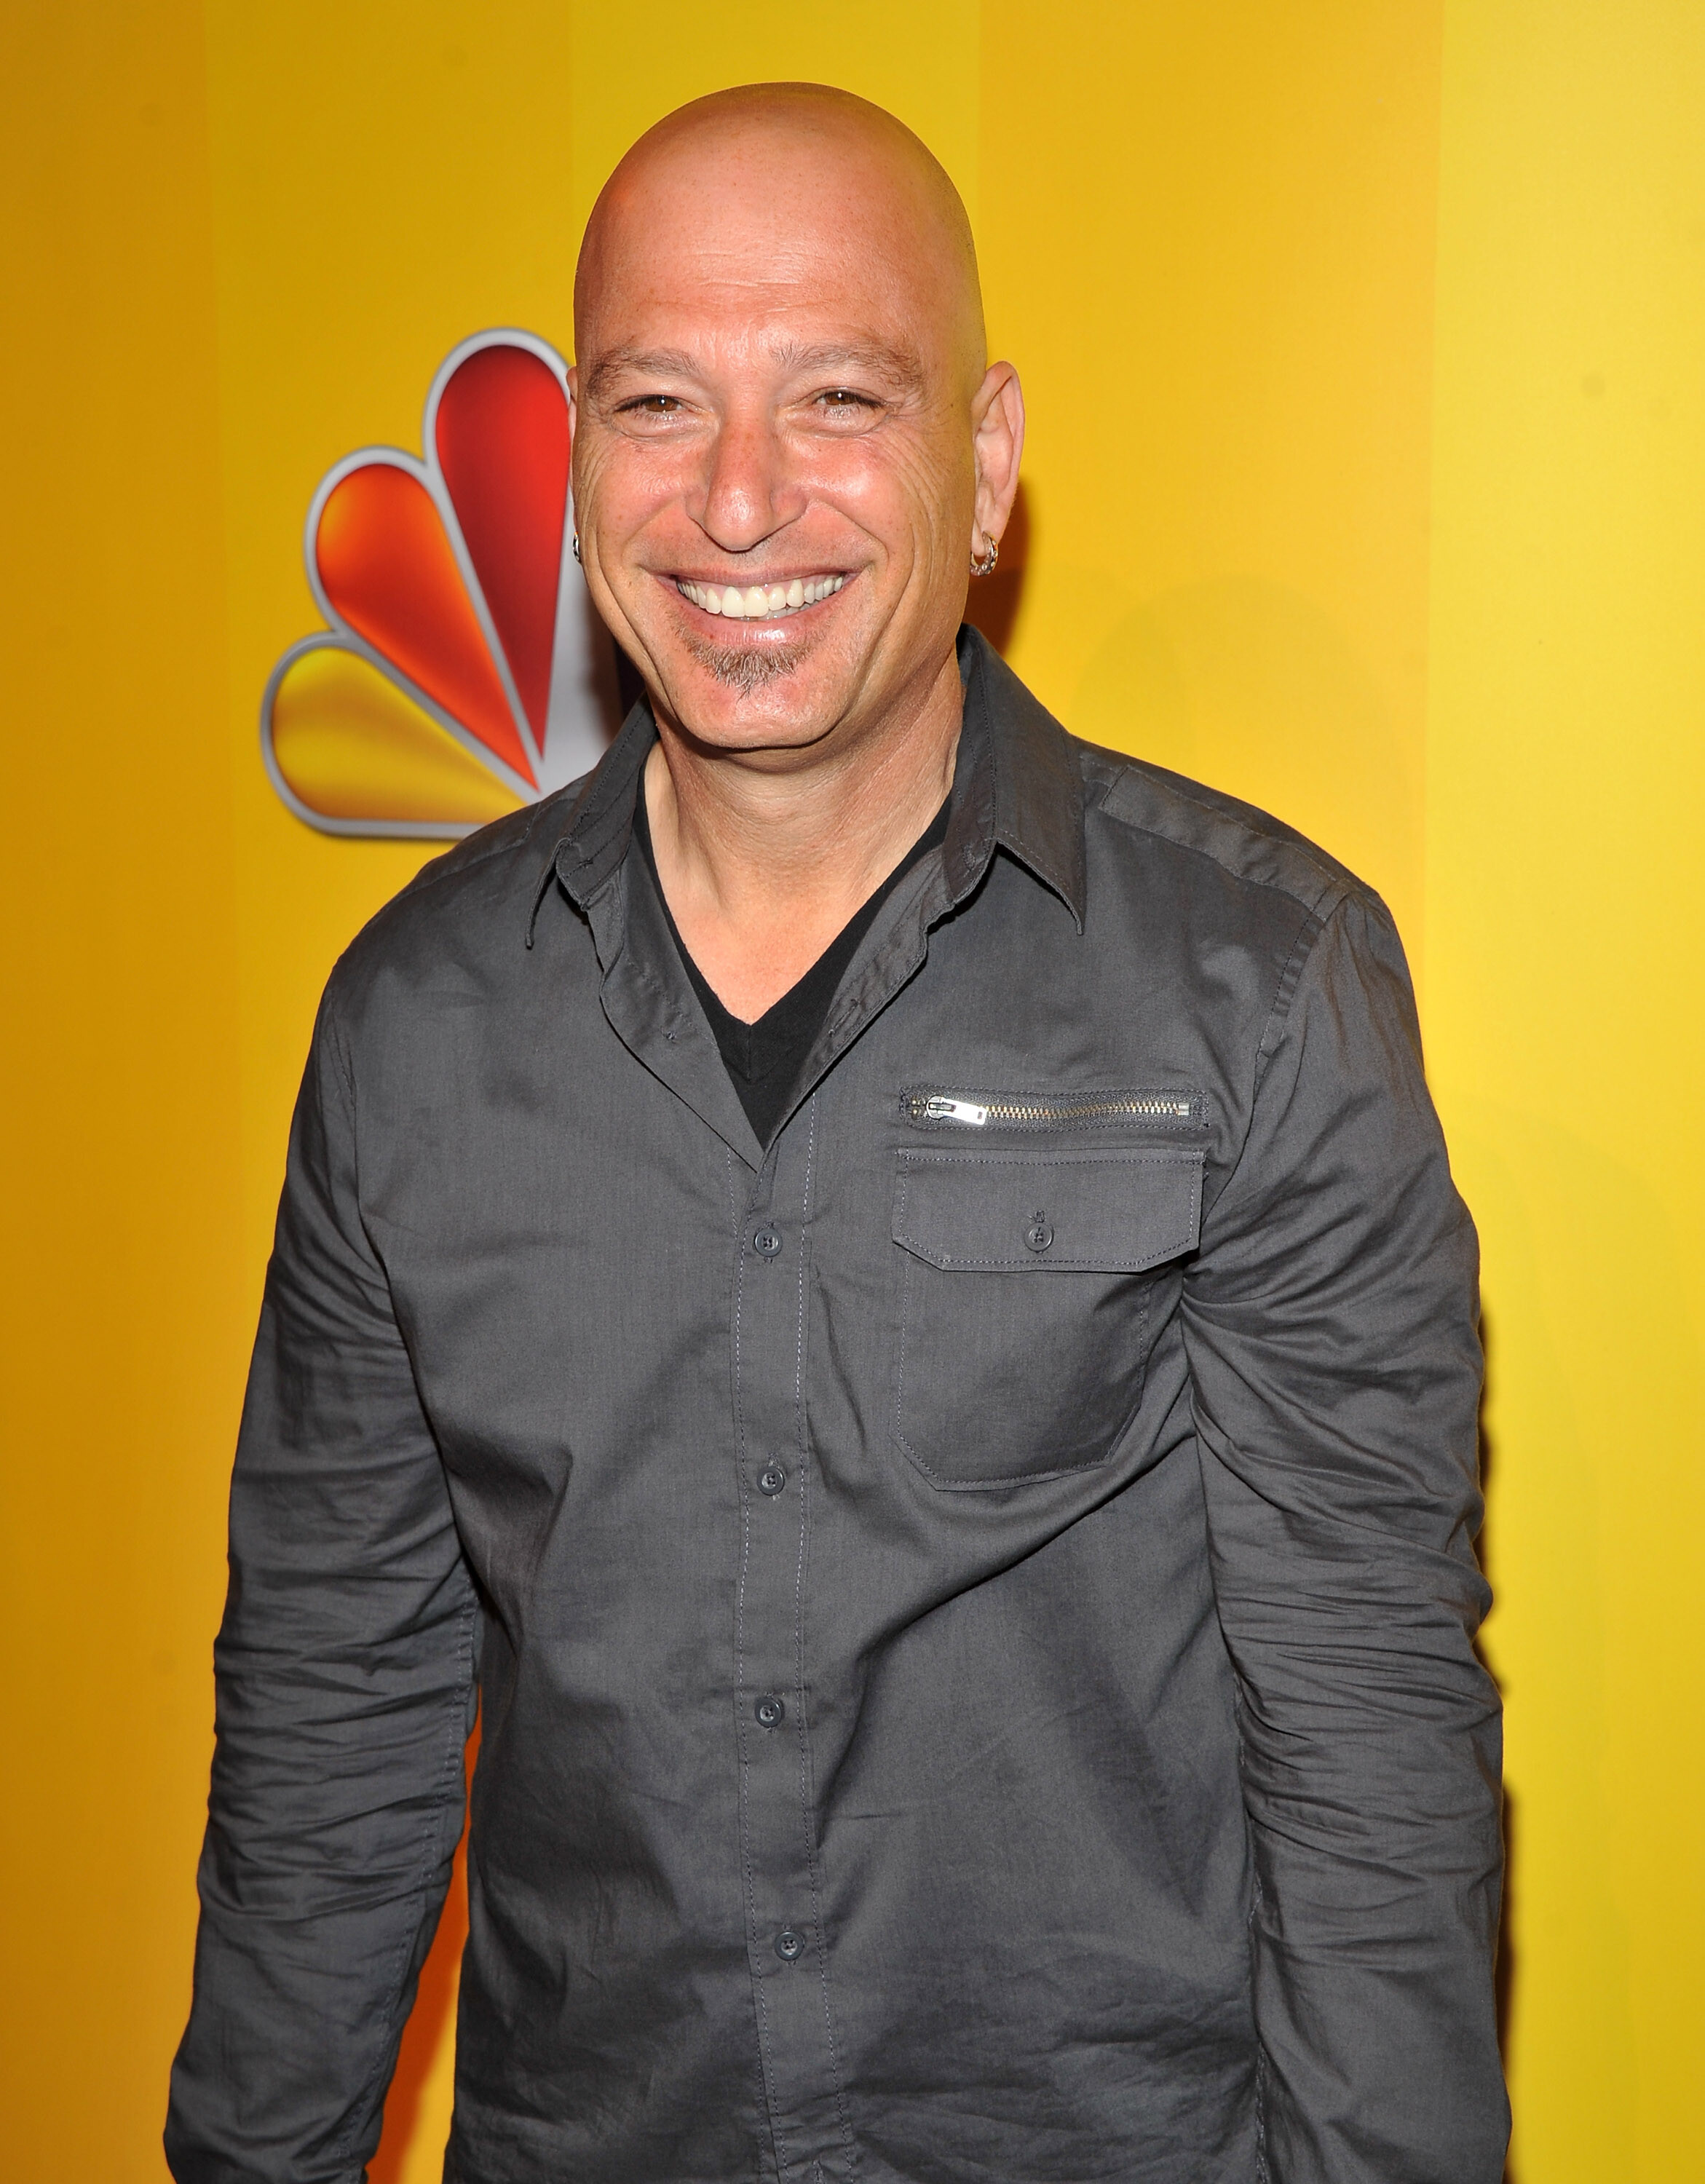 Howie Mandel shares he's ok after collapsing at Starbucks